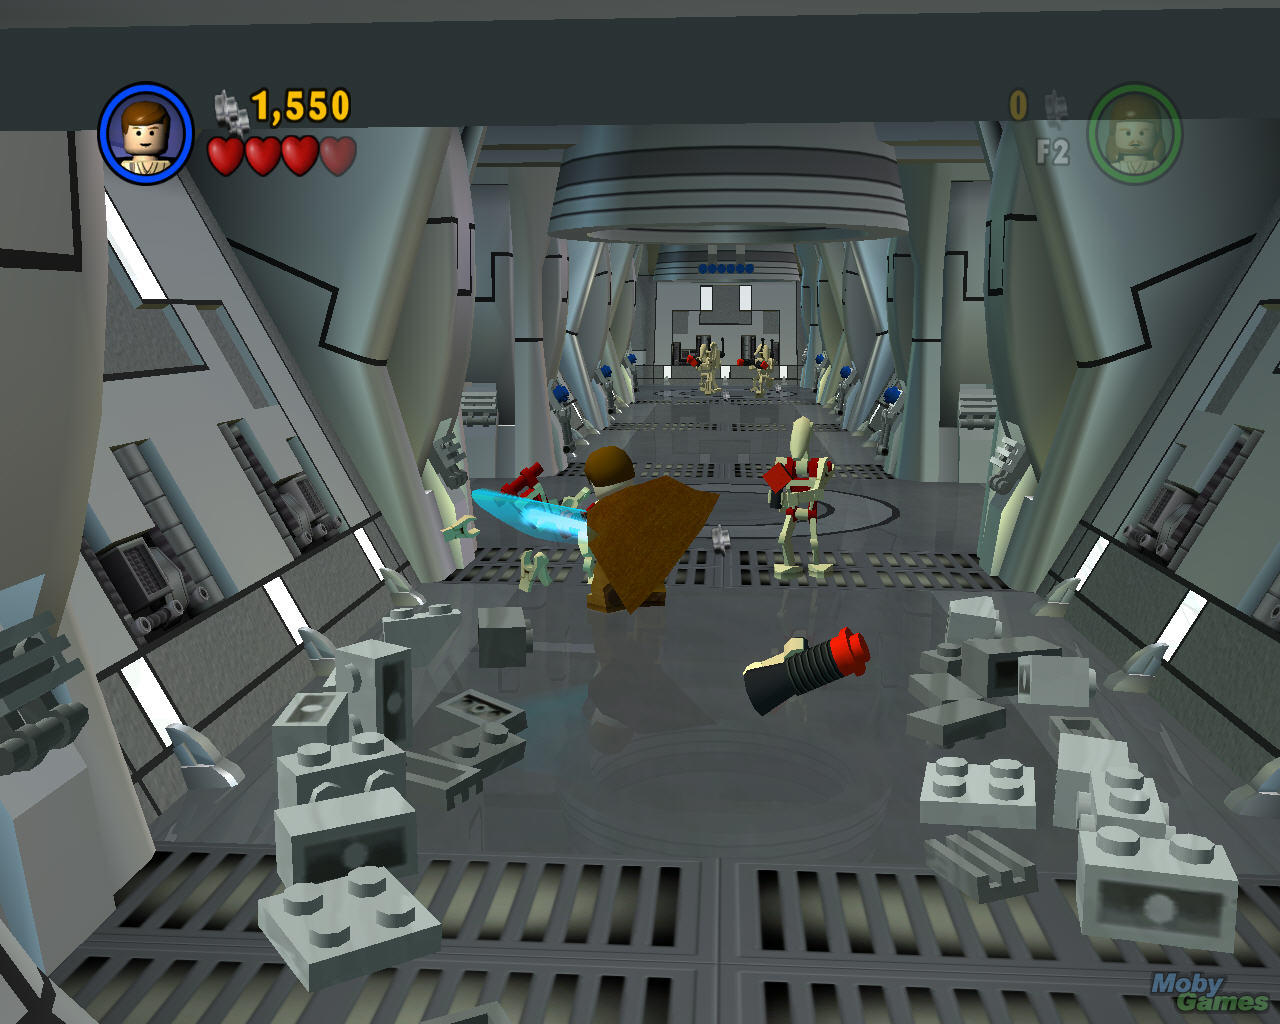 http://www.pcgameshardware.com/screenshots/original/2008/10/Special_Star_wars_2_11_LEGO_SW_The_Video_Game_2005.jpg